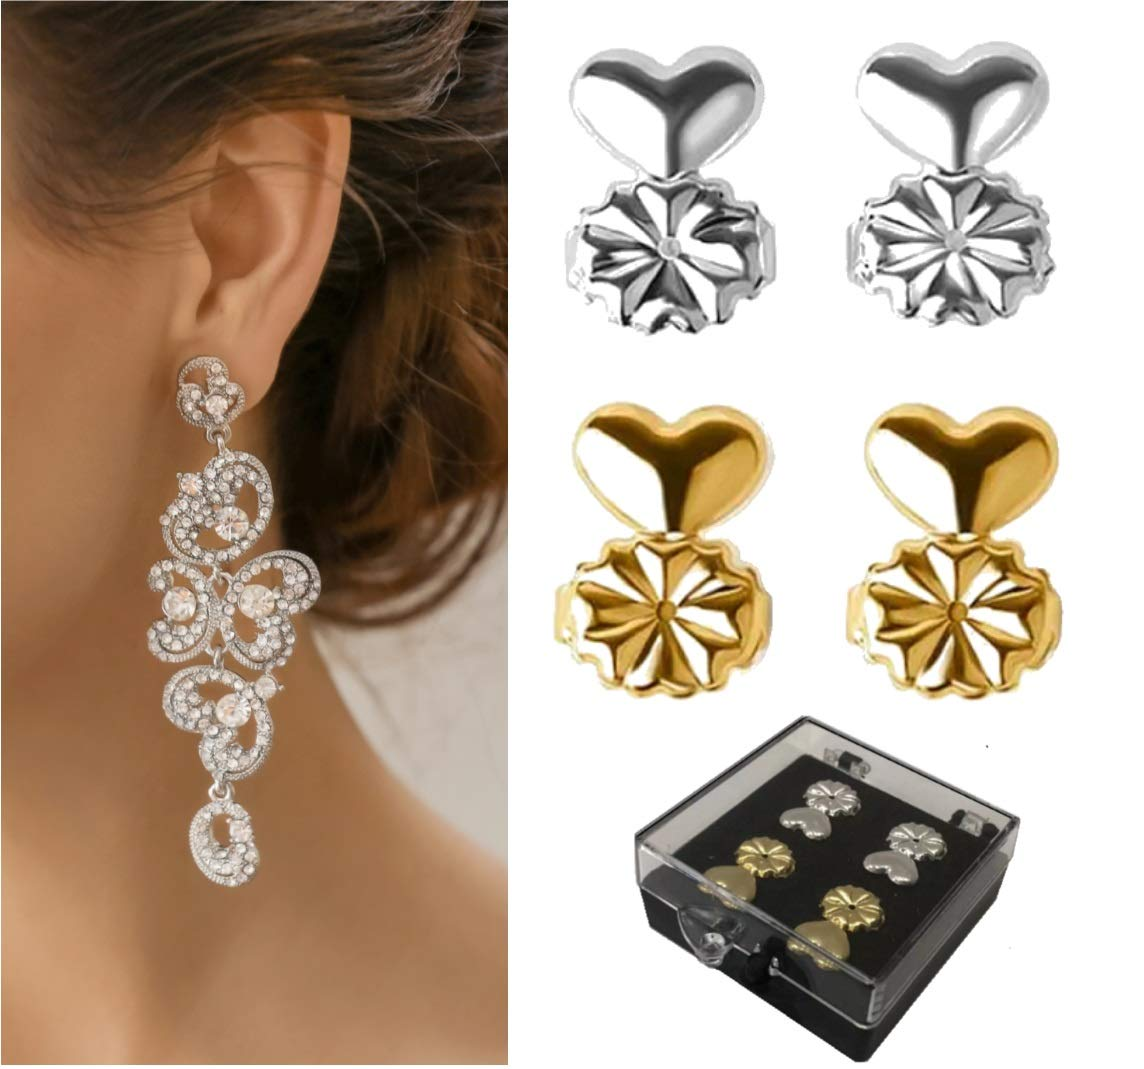 earDlite the original Earring Lifters - replaces all post type earring backs and like magic straightens droopy earrings. Included are 1 pair 925 Silver and 1 pair 18K Gold plated lifters. Cloverside Inc